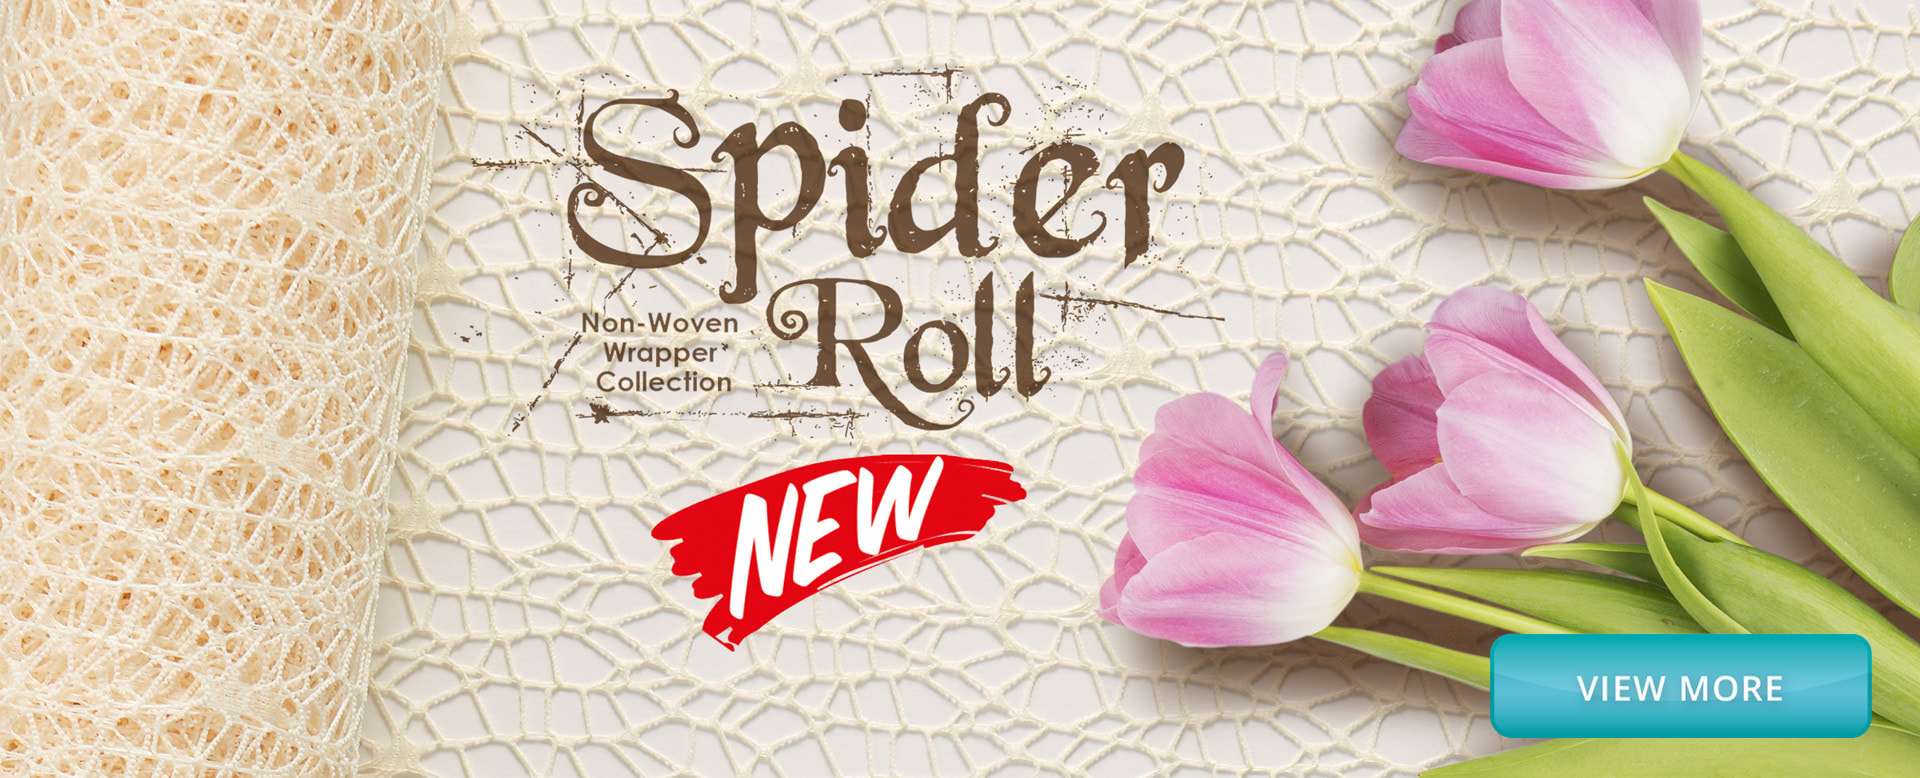 spider-roll_1_orig